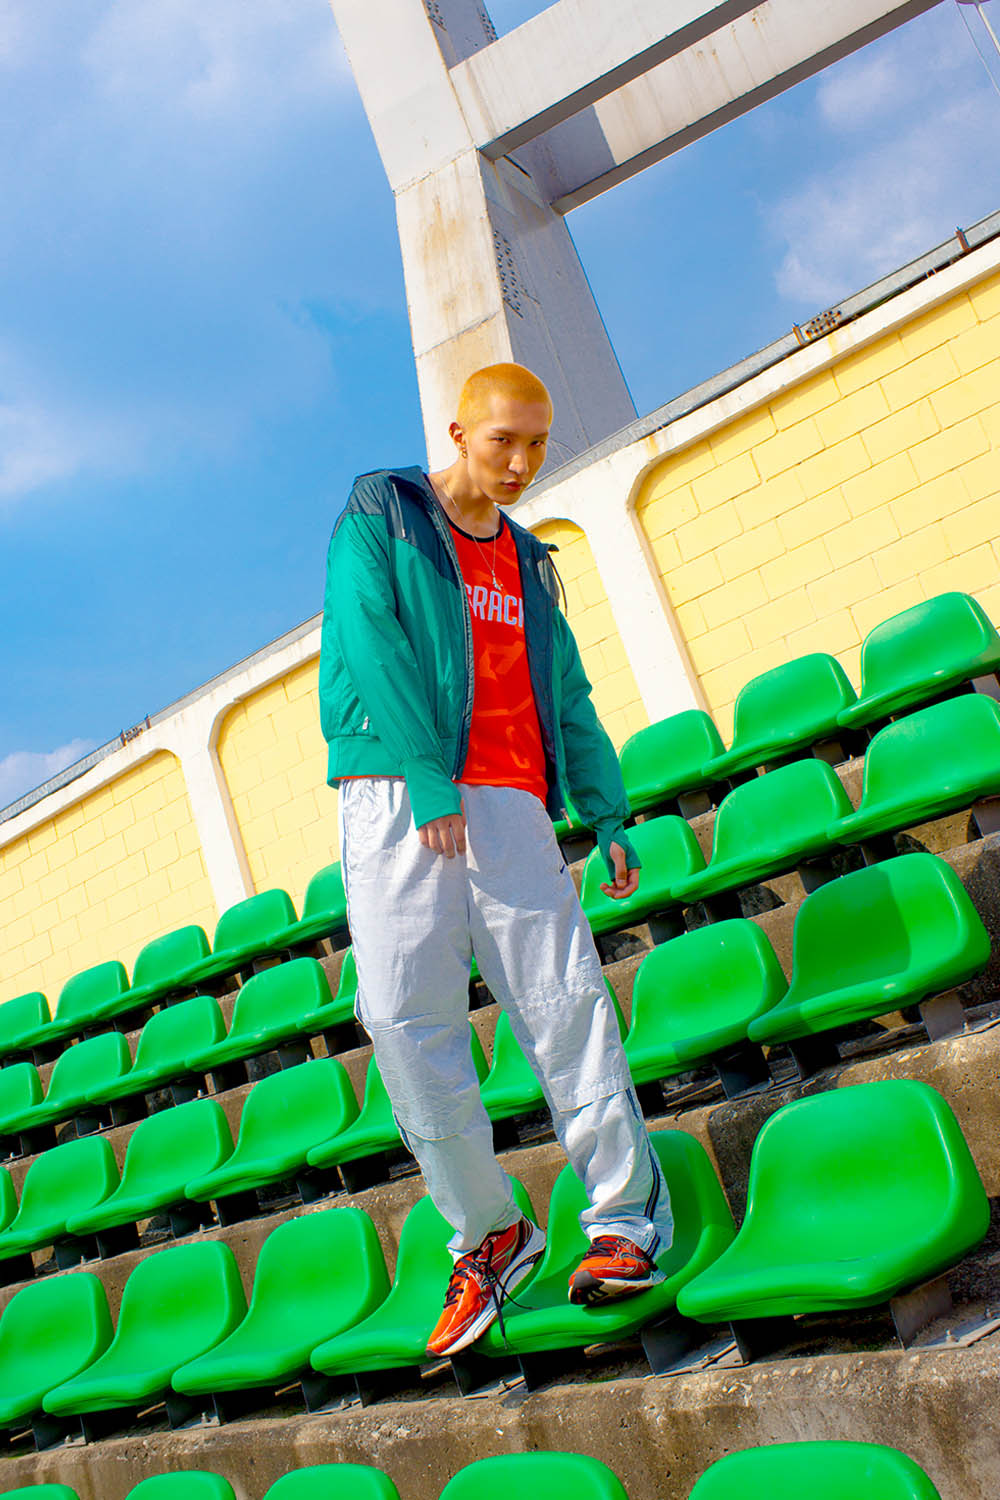 nivelcrack editorial lookbook_0005_6.jpg